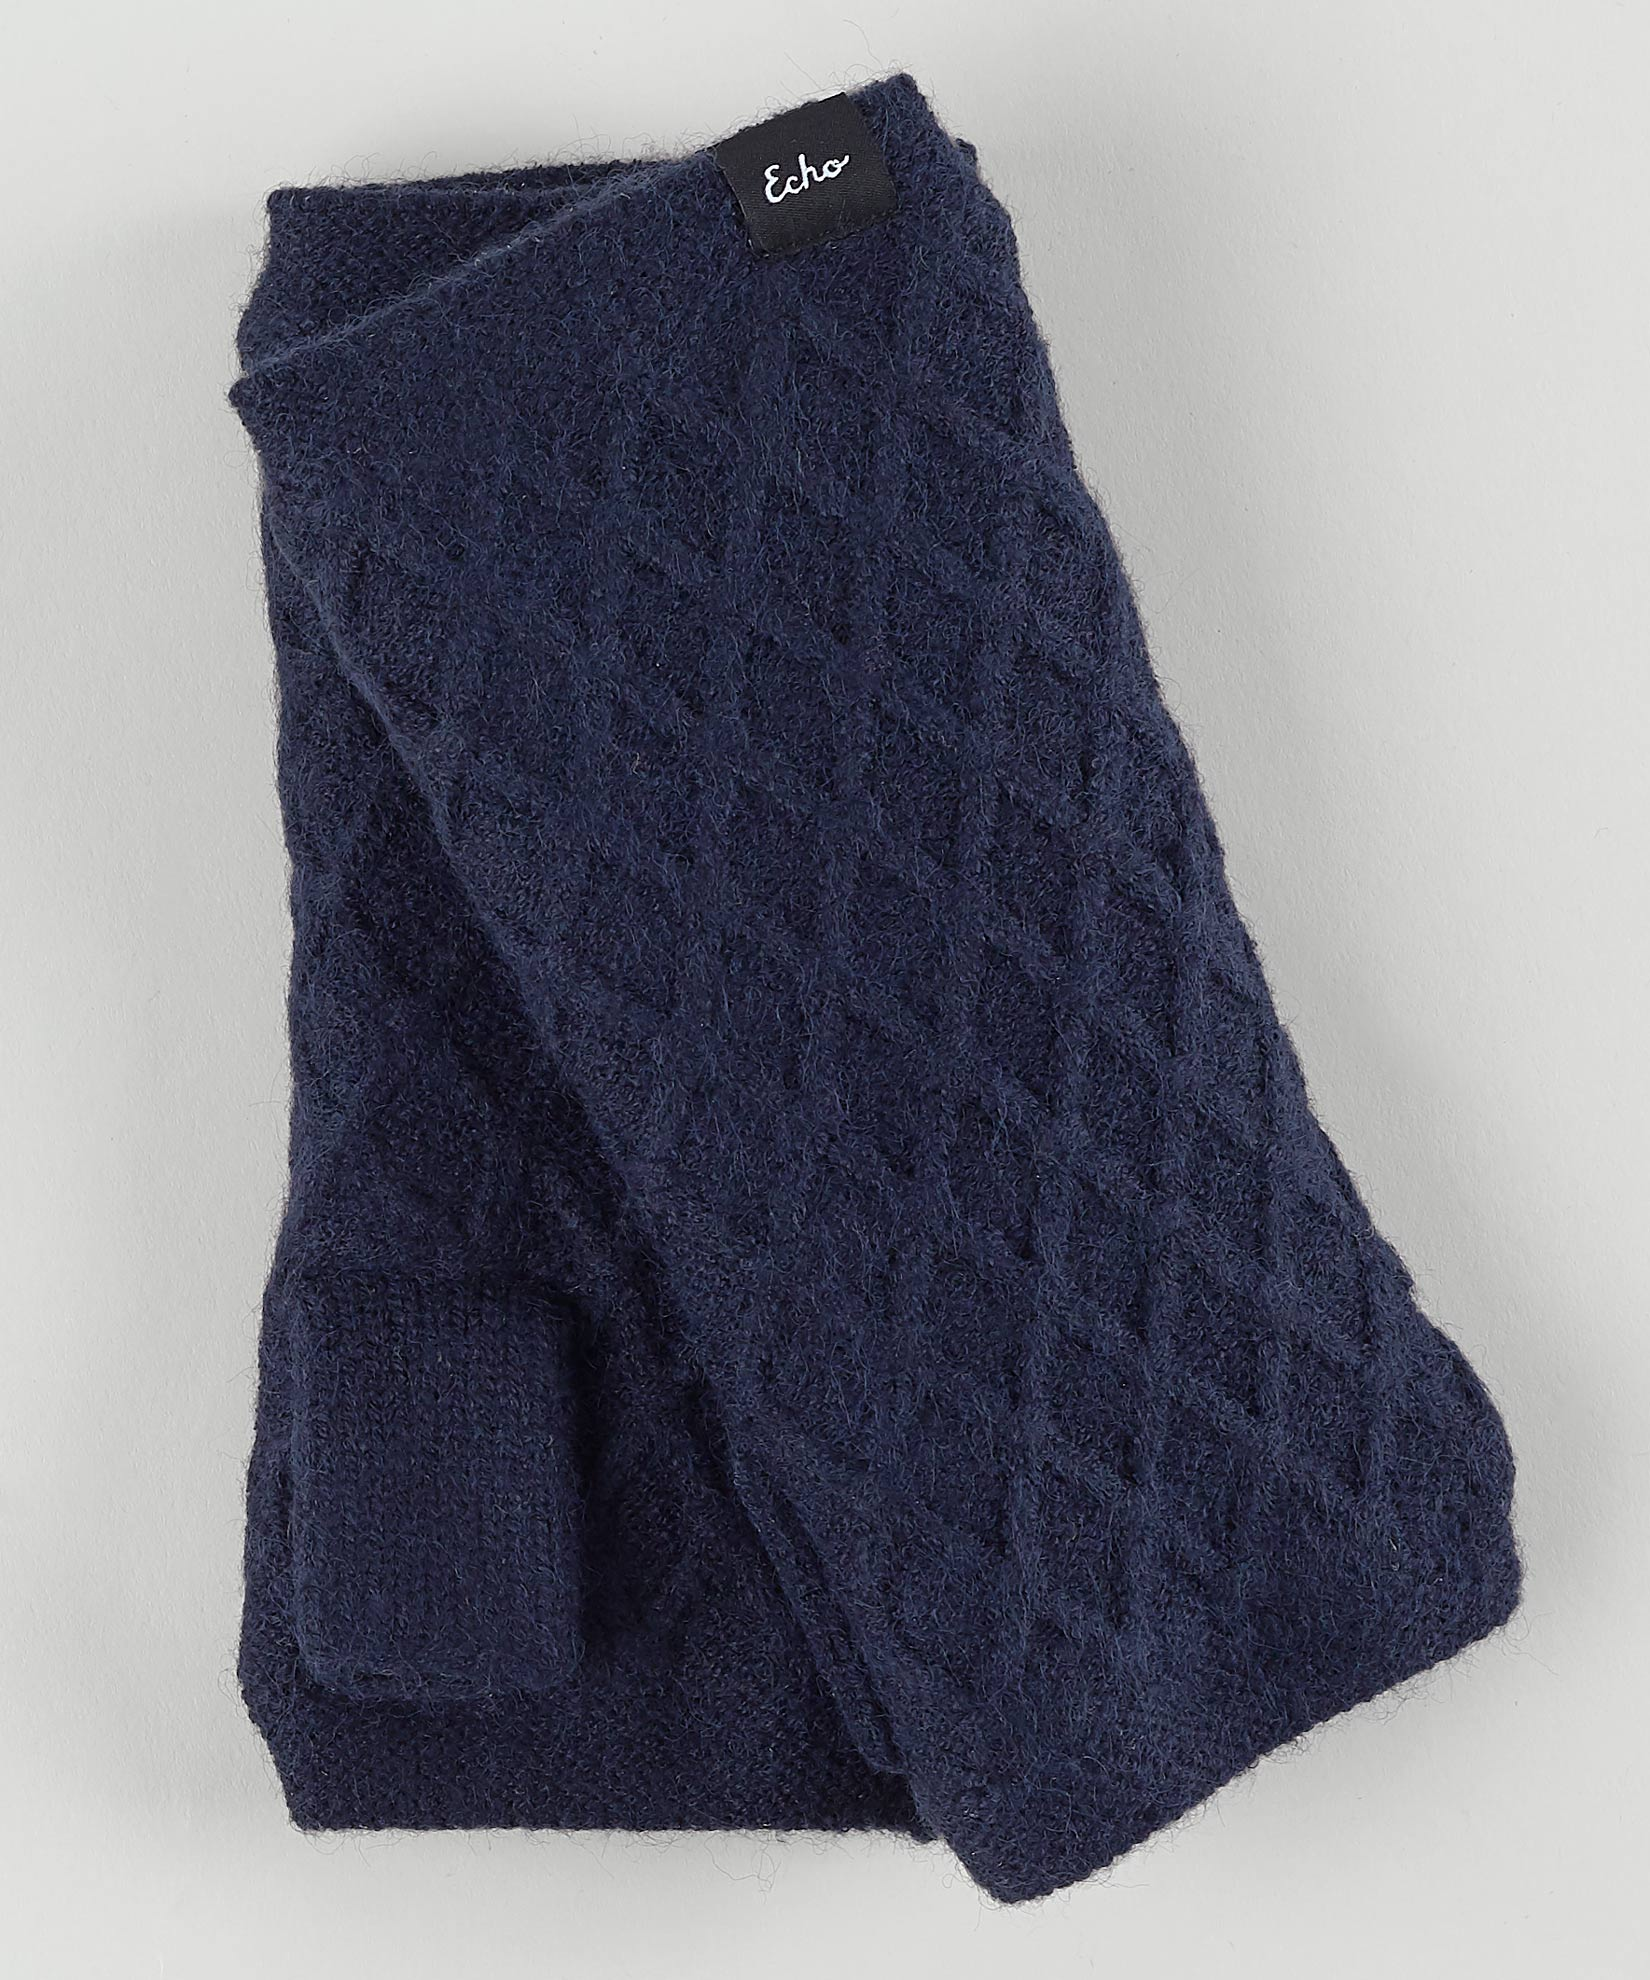 Echo Navy - Diamond Fingerless Glove